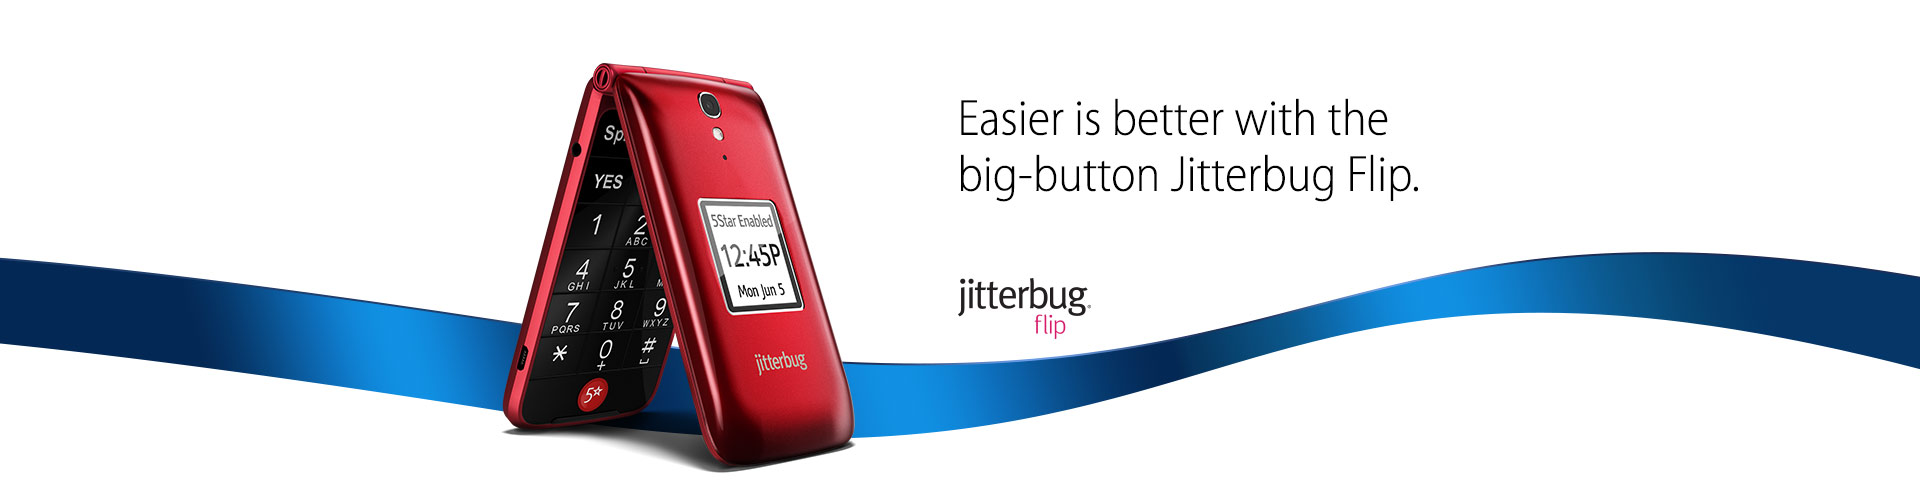 Easier is better with the big-button Jitterbug Flip